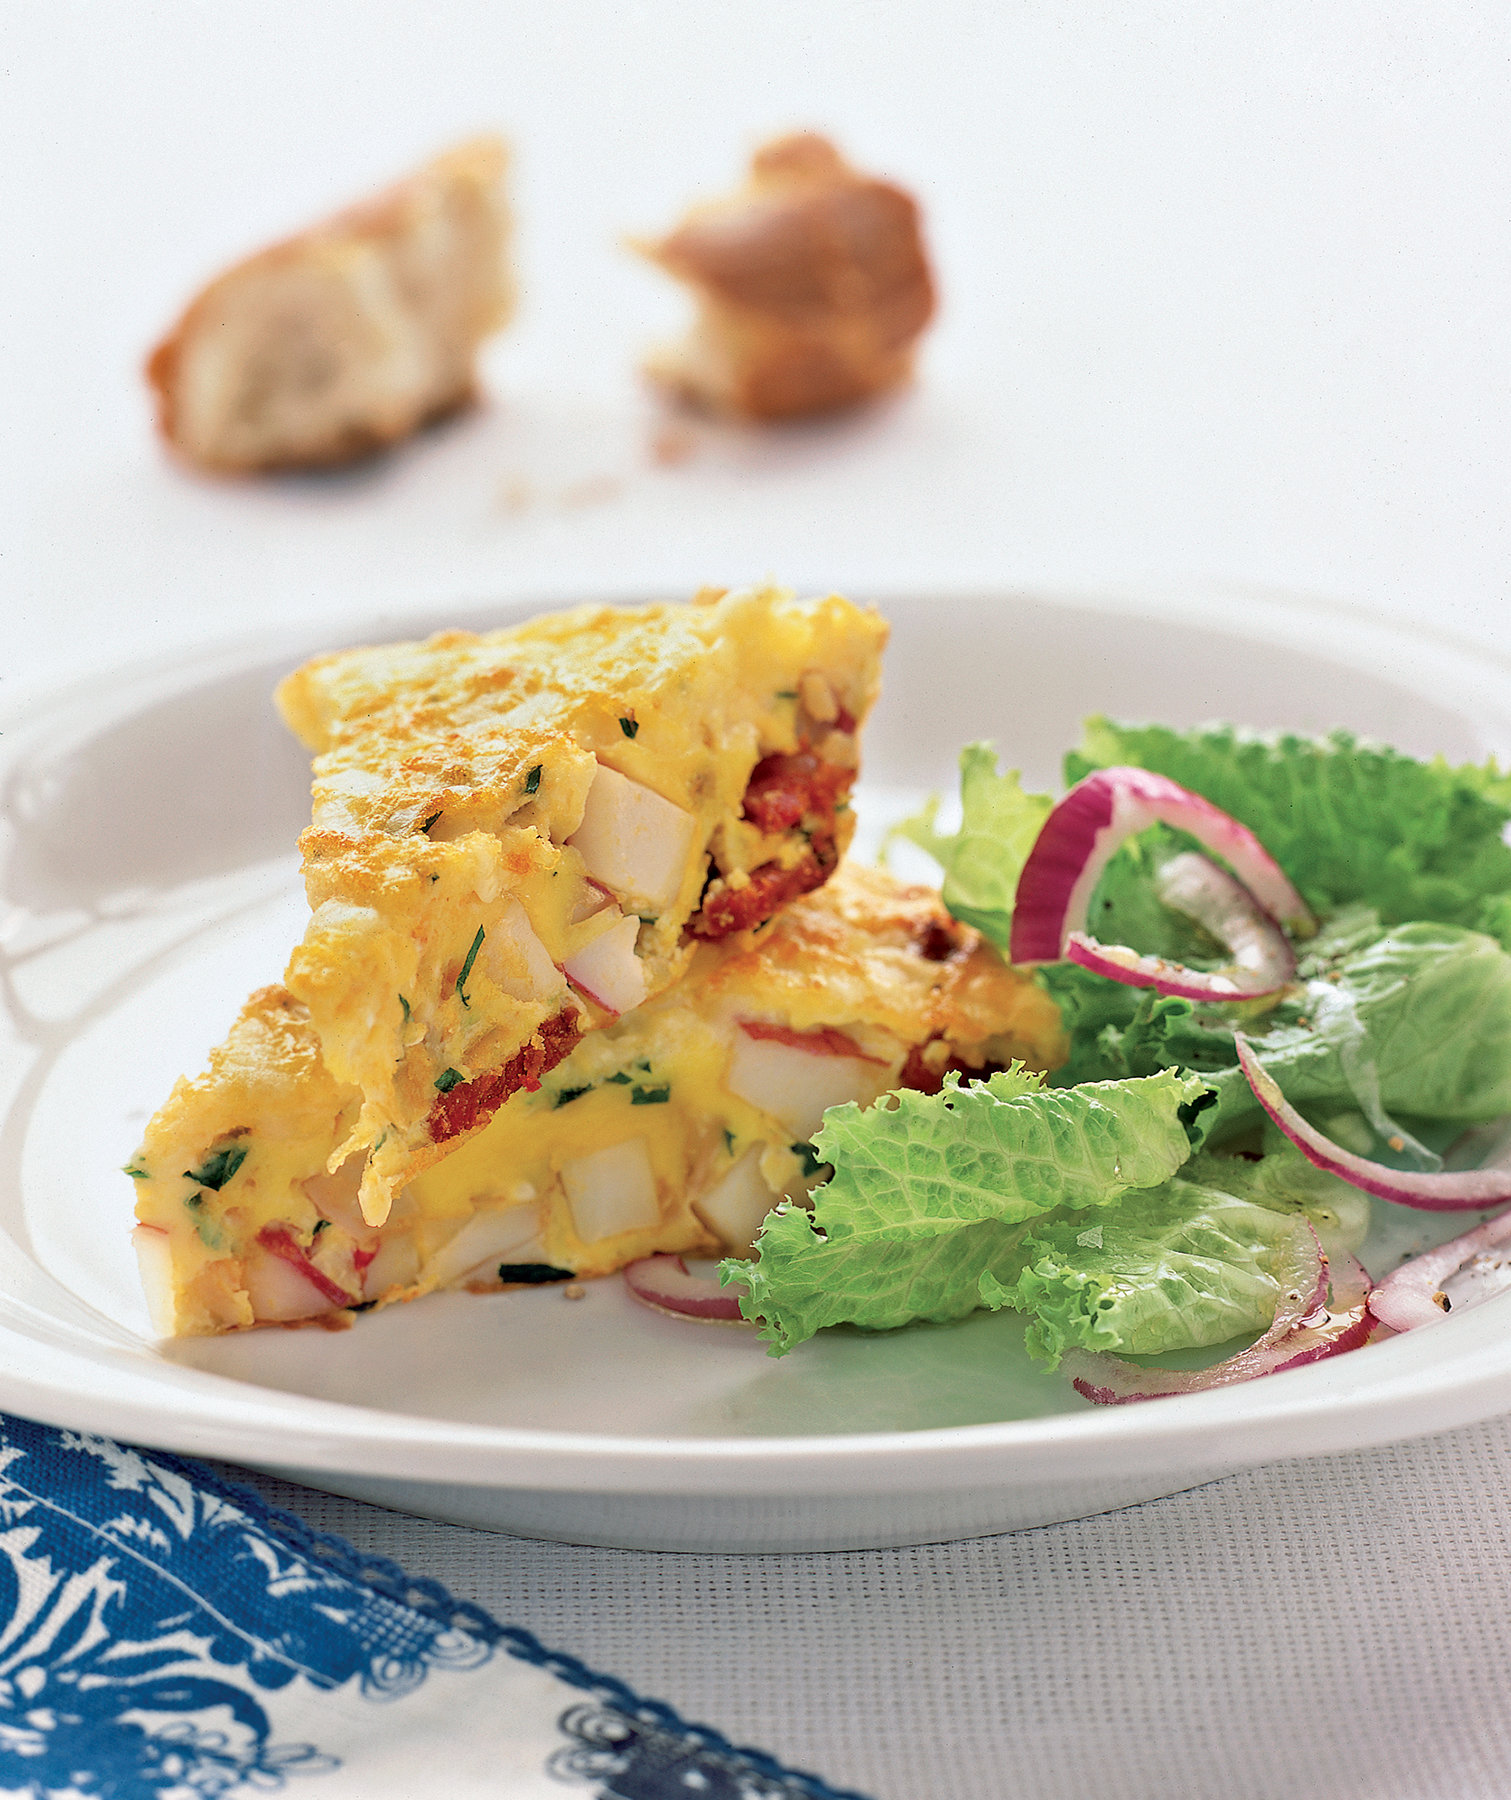 Easy Supper Recipes: Spanish Omelet With Potatoes And Chorizo